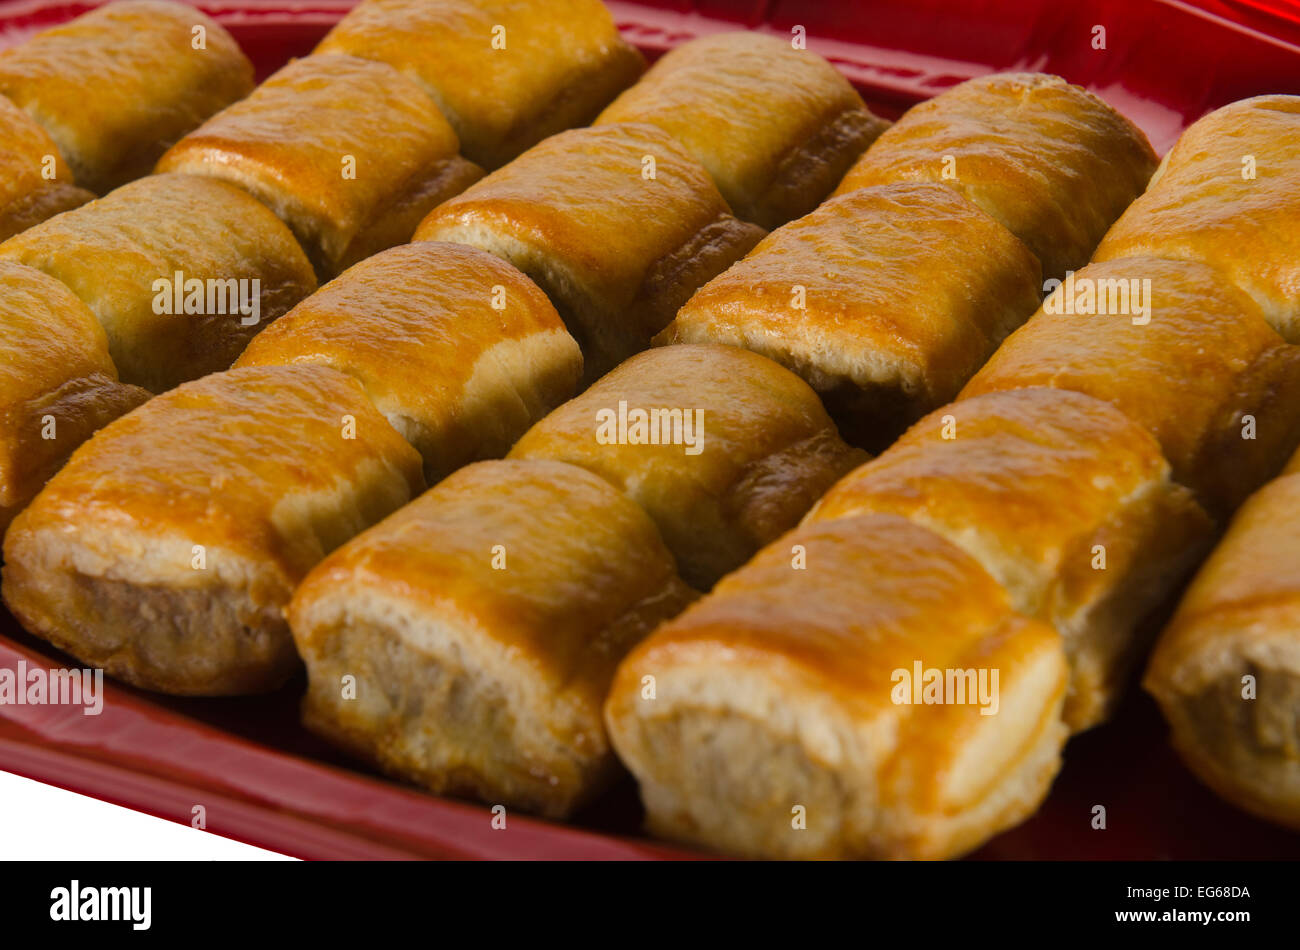 a plate of cooked sausage rolls - Stock Image